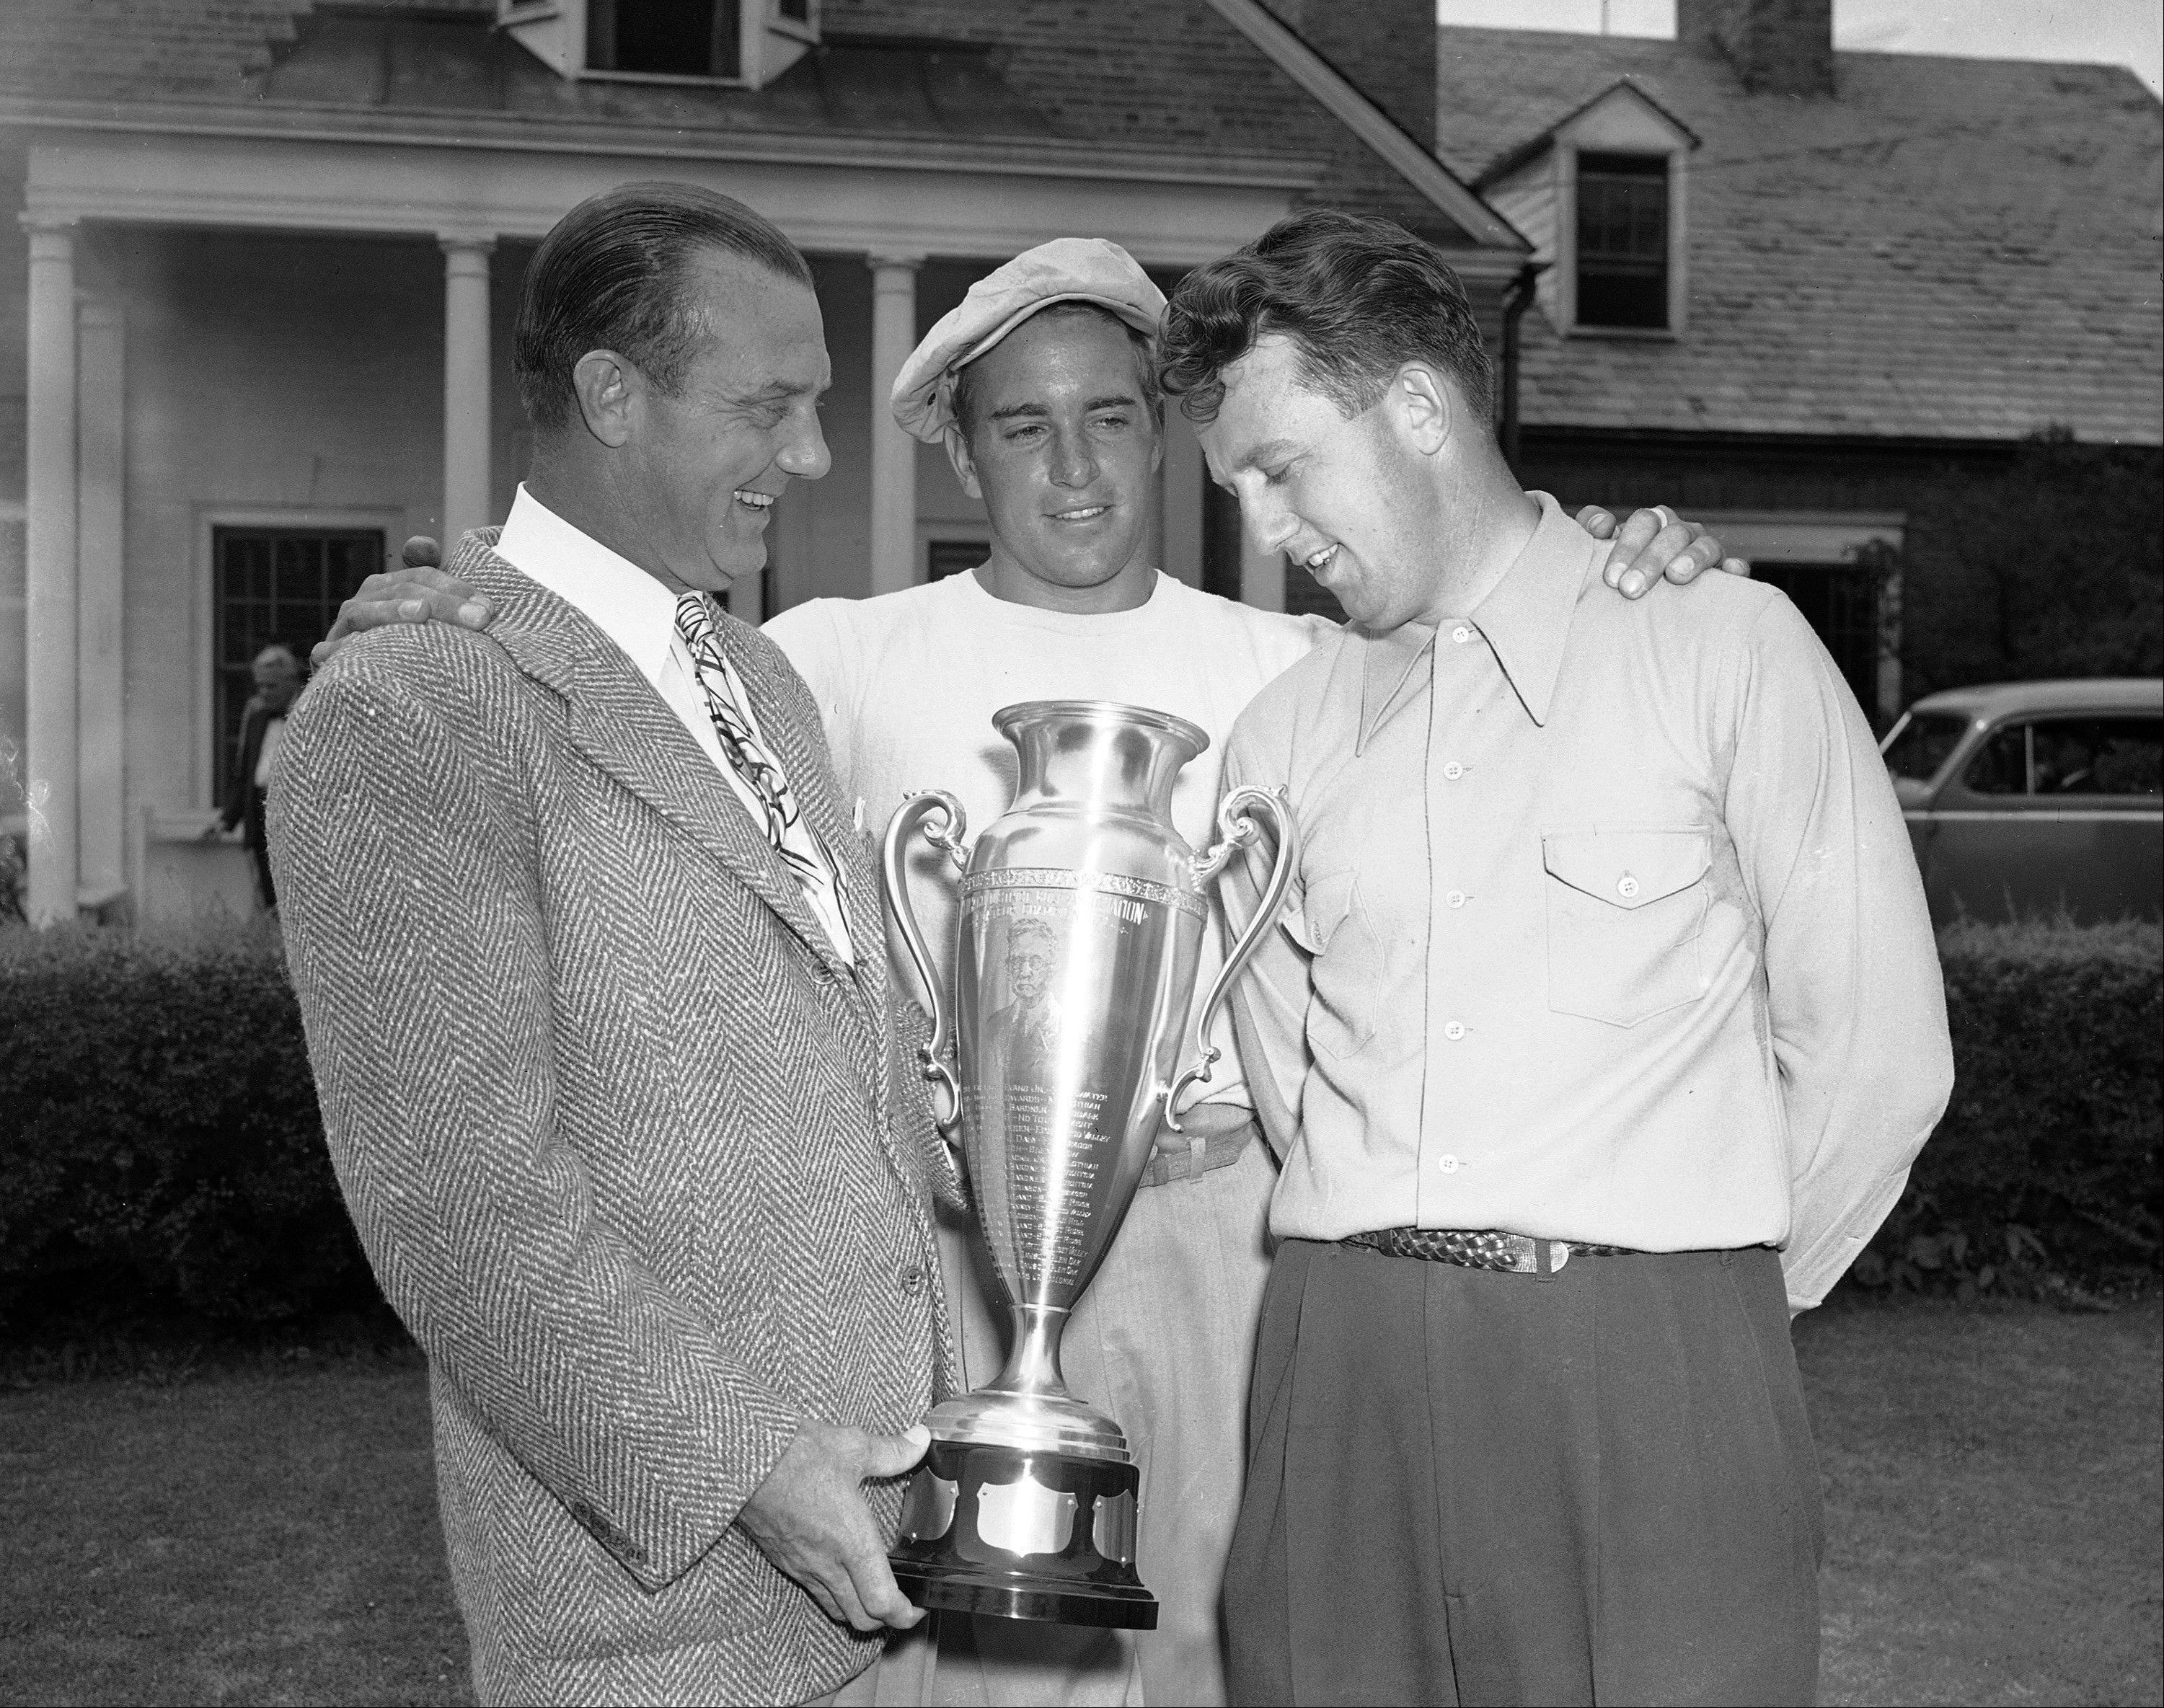 Golfer Ray Billows, right, winner of the first Great Lakes amateur golf championship, receives the tournament trophy from Scotty Fessenden, left, president of the Chicago District Golf Association, as Frank Stranahan, center, looks on.